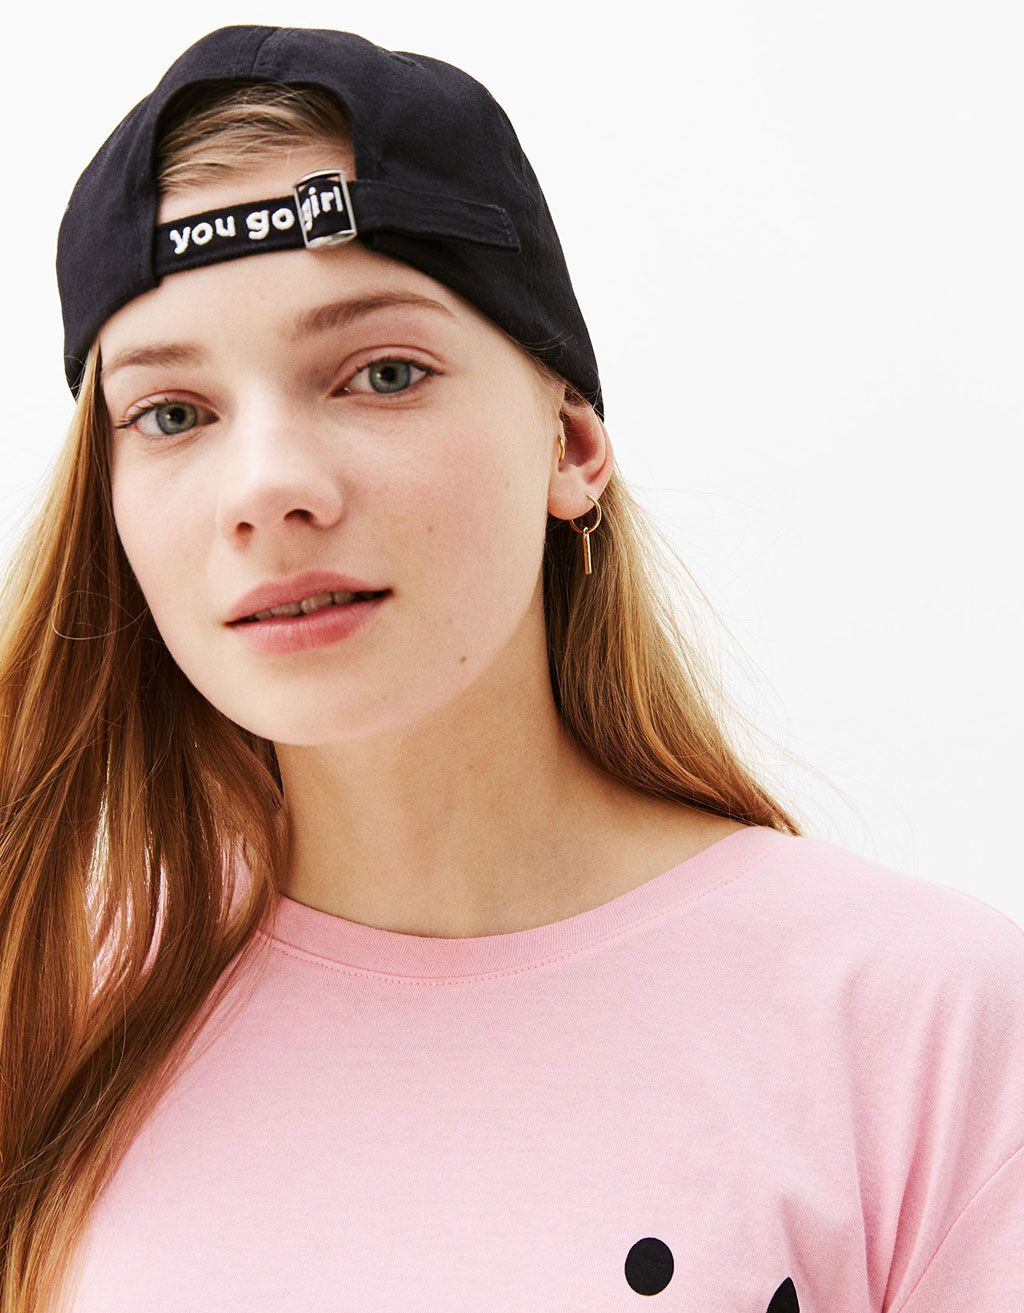 a727ee2a You go girl' slogan hat | Want to have | You go girl, Hats, Beanie